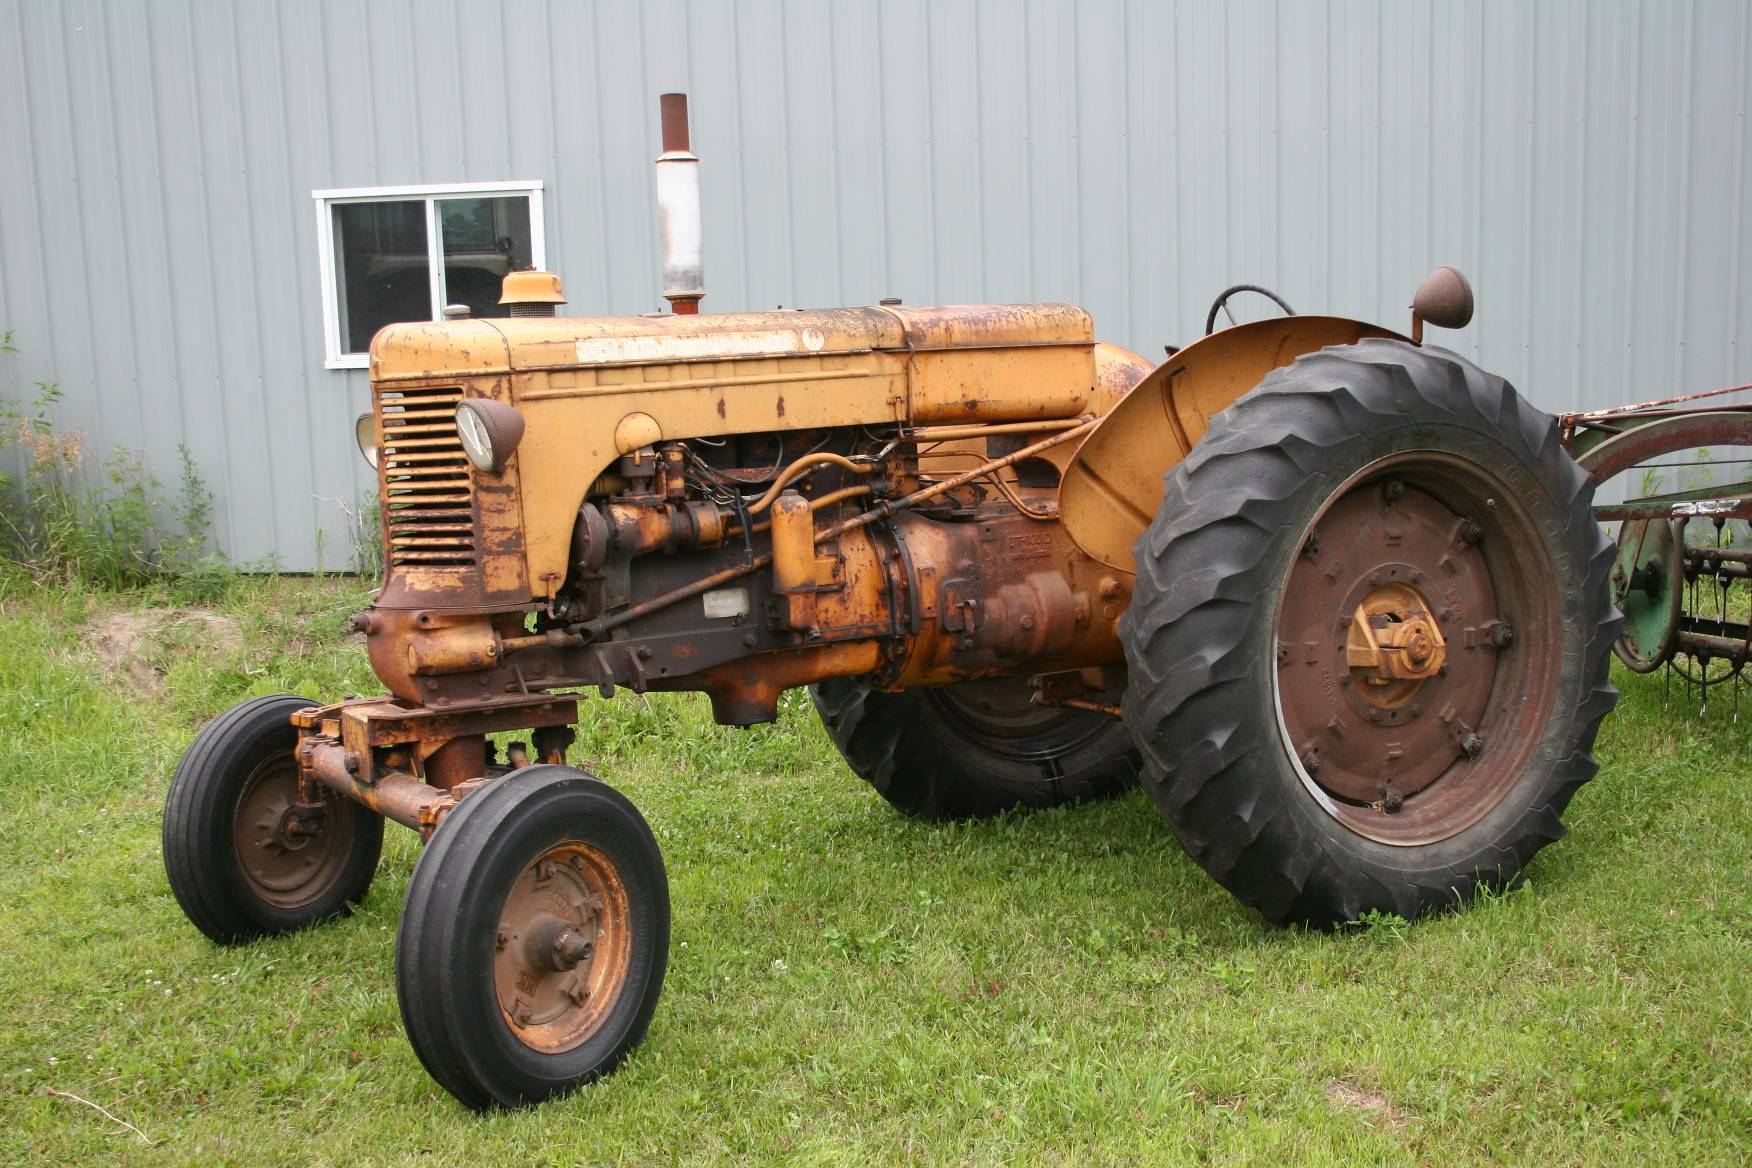 farm machinery Used farm equipment – shop online for used farm equipment for sale, including tractors, attachments, trailers, harvesting equipment, skid steers, and more at farmscom.